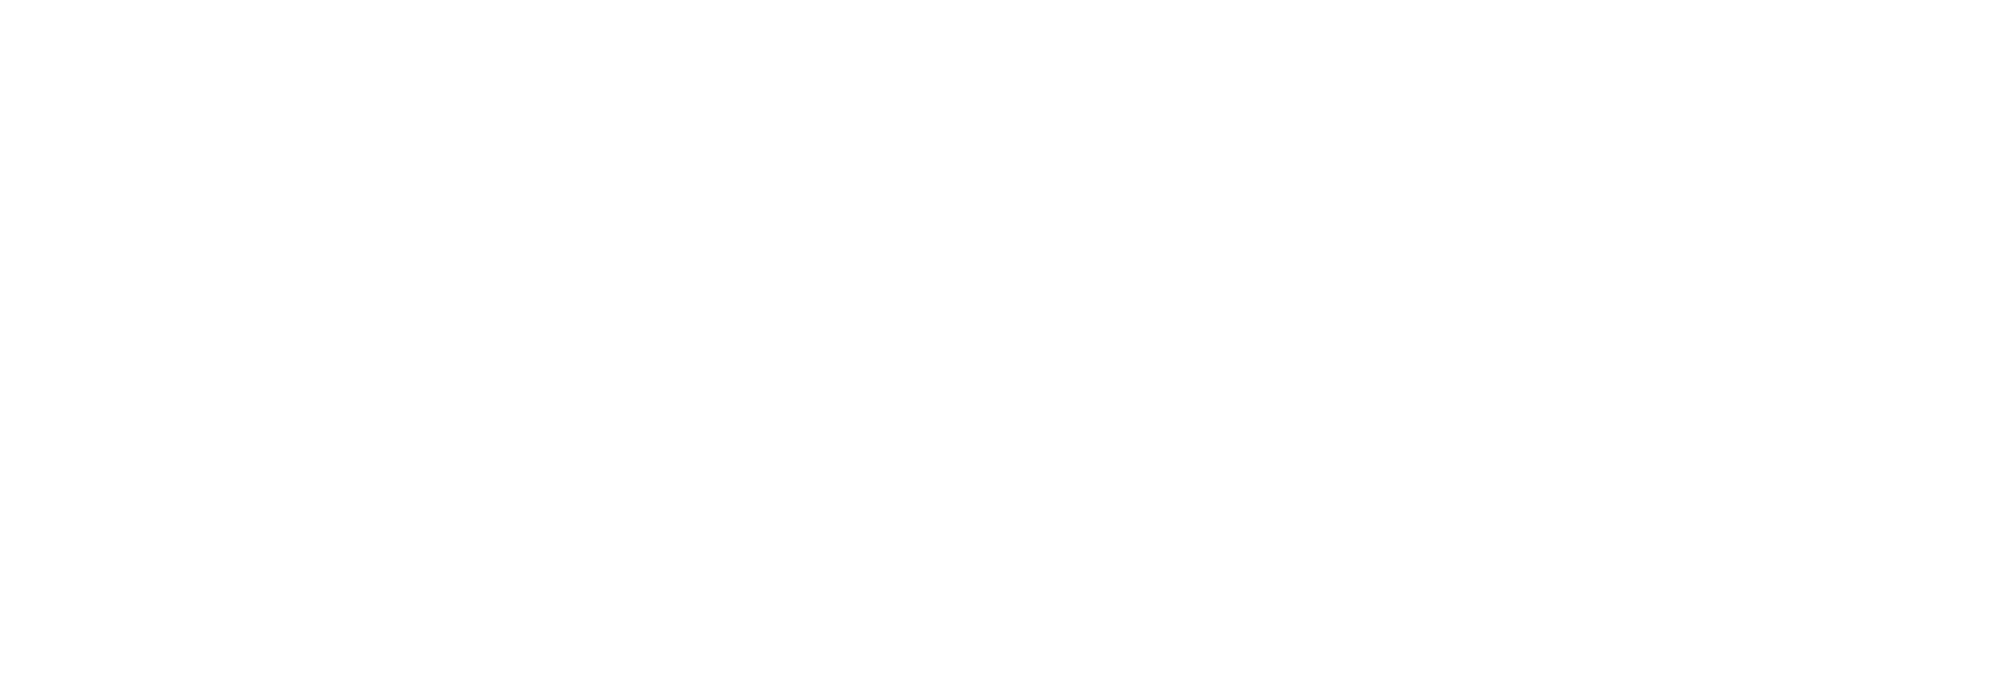 Great Mountain Partners